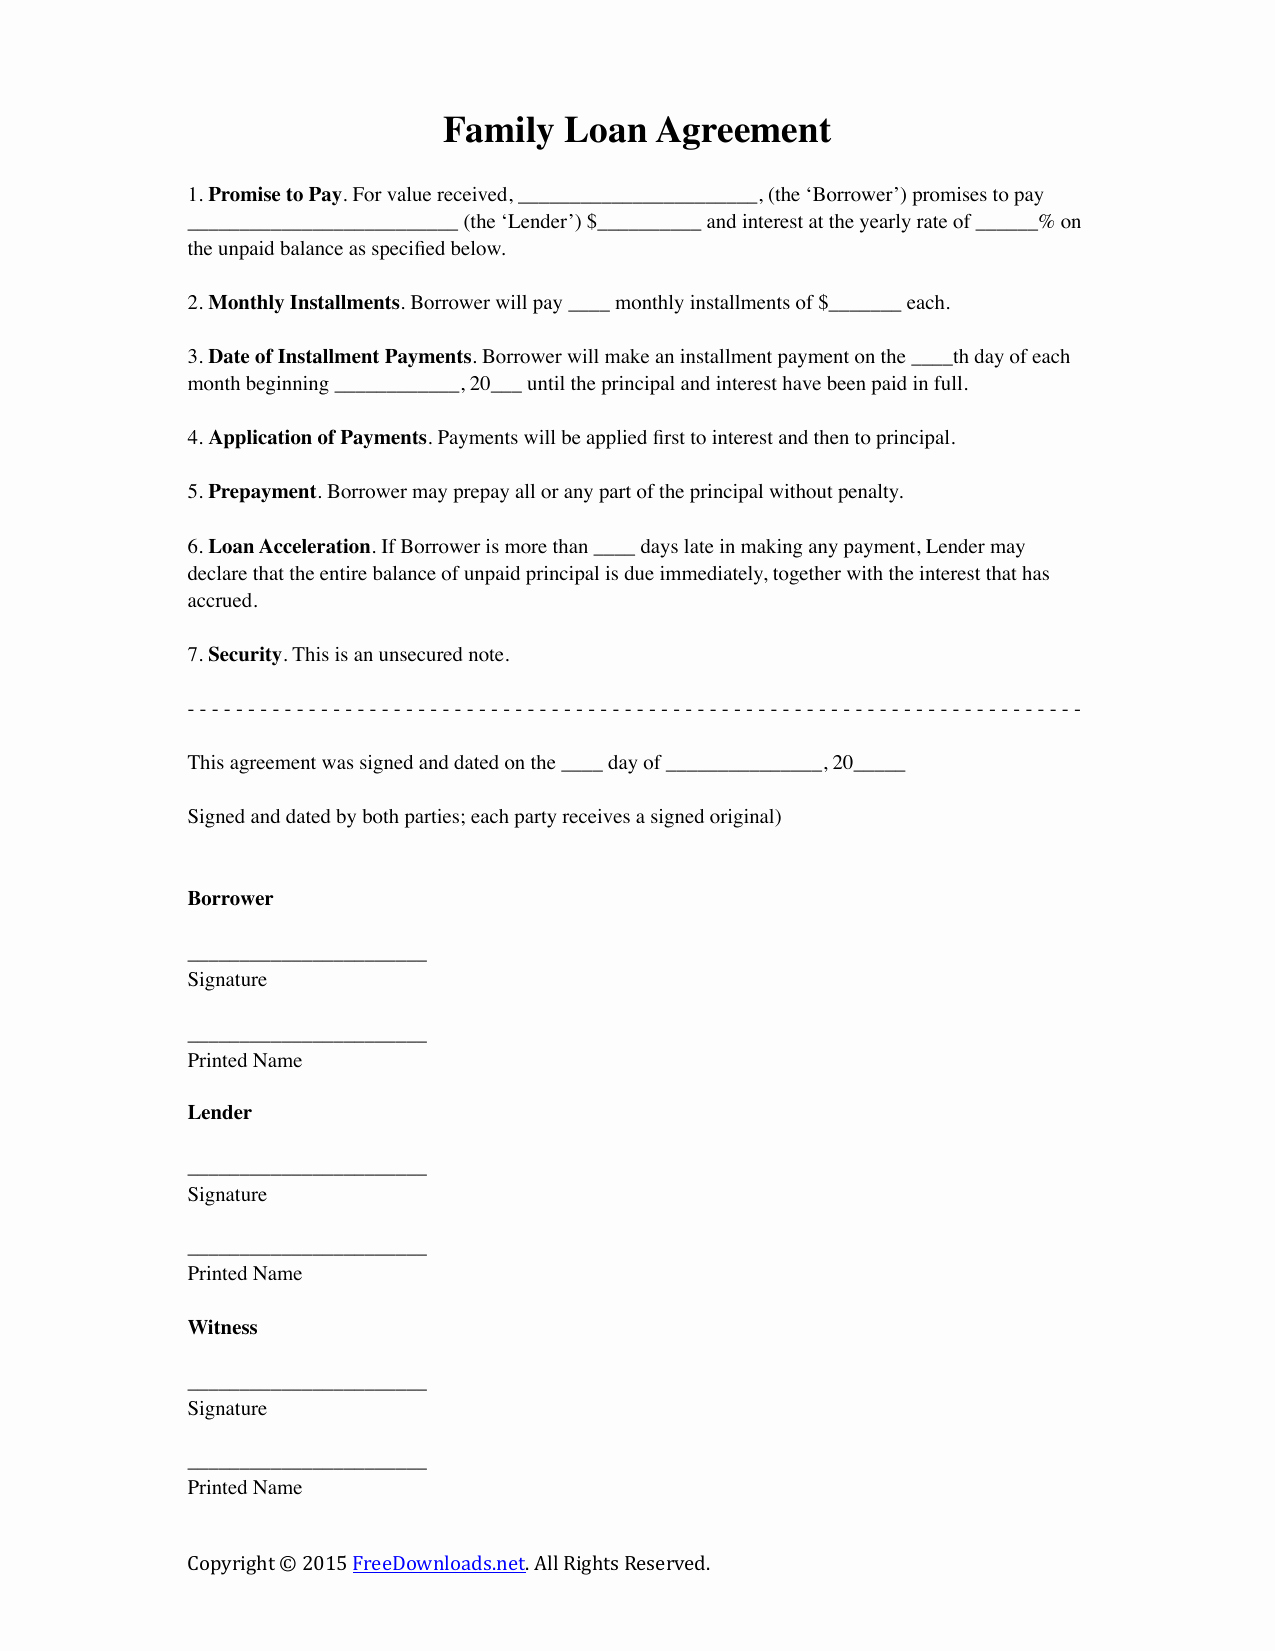 International Promissory Note Template Elegant Download Family Loan Agreement Template Pdf Rtf Word